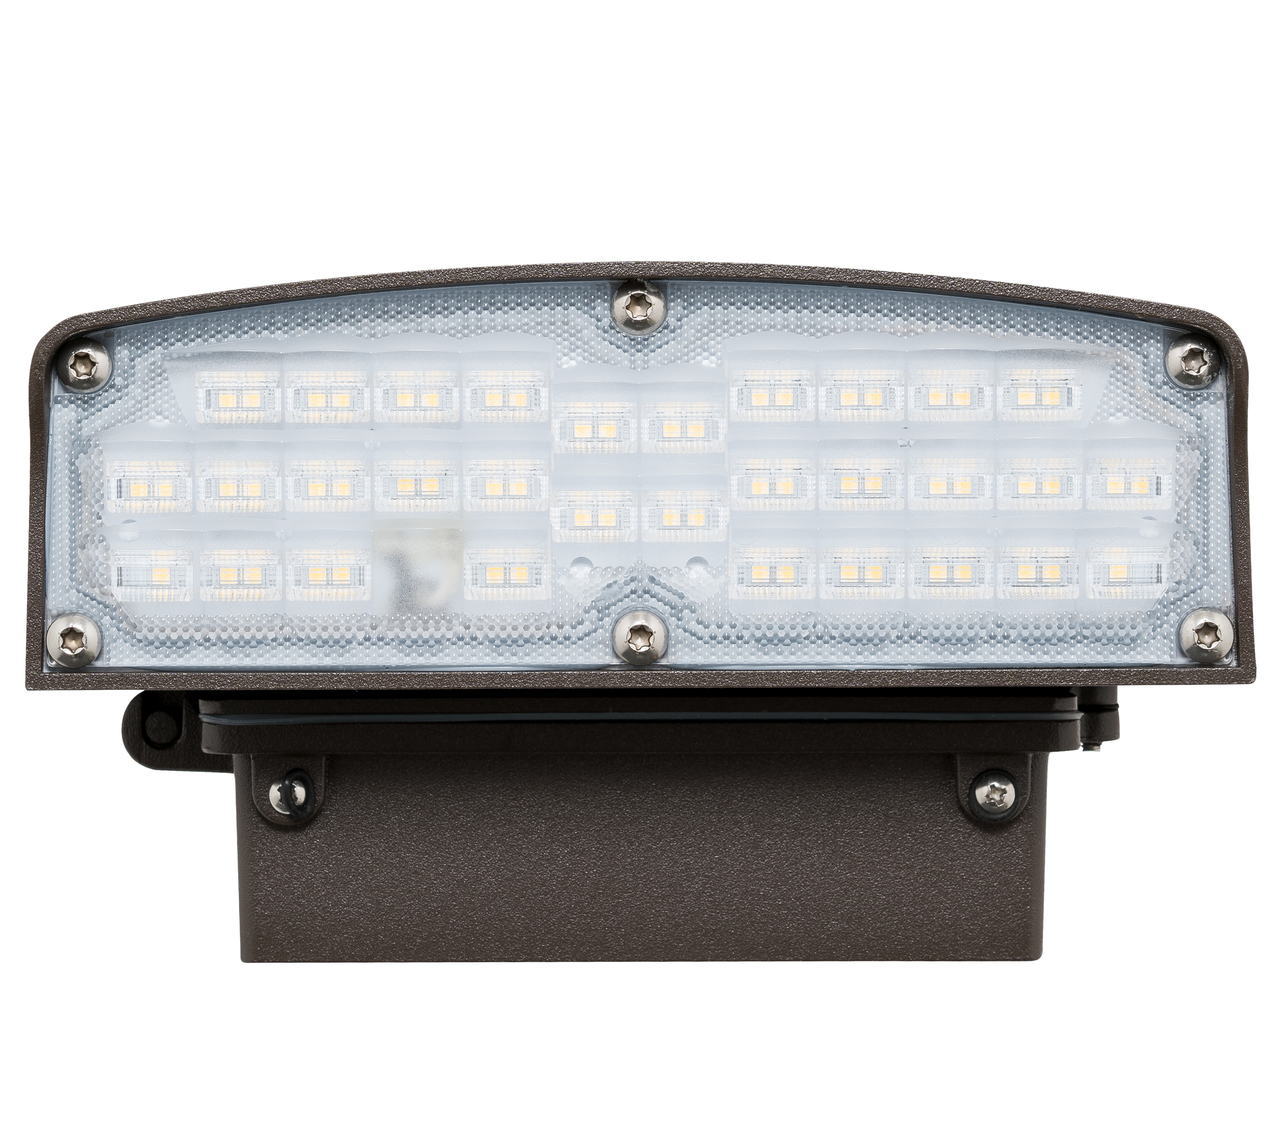 Downlight Full Cutoff LED Wall Pack - Choose Your Wattage (NOT ADJUSTABLE)